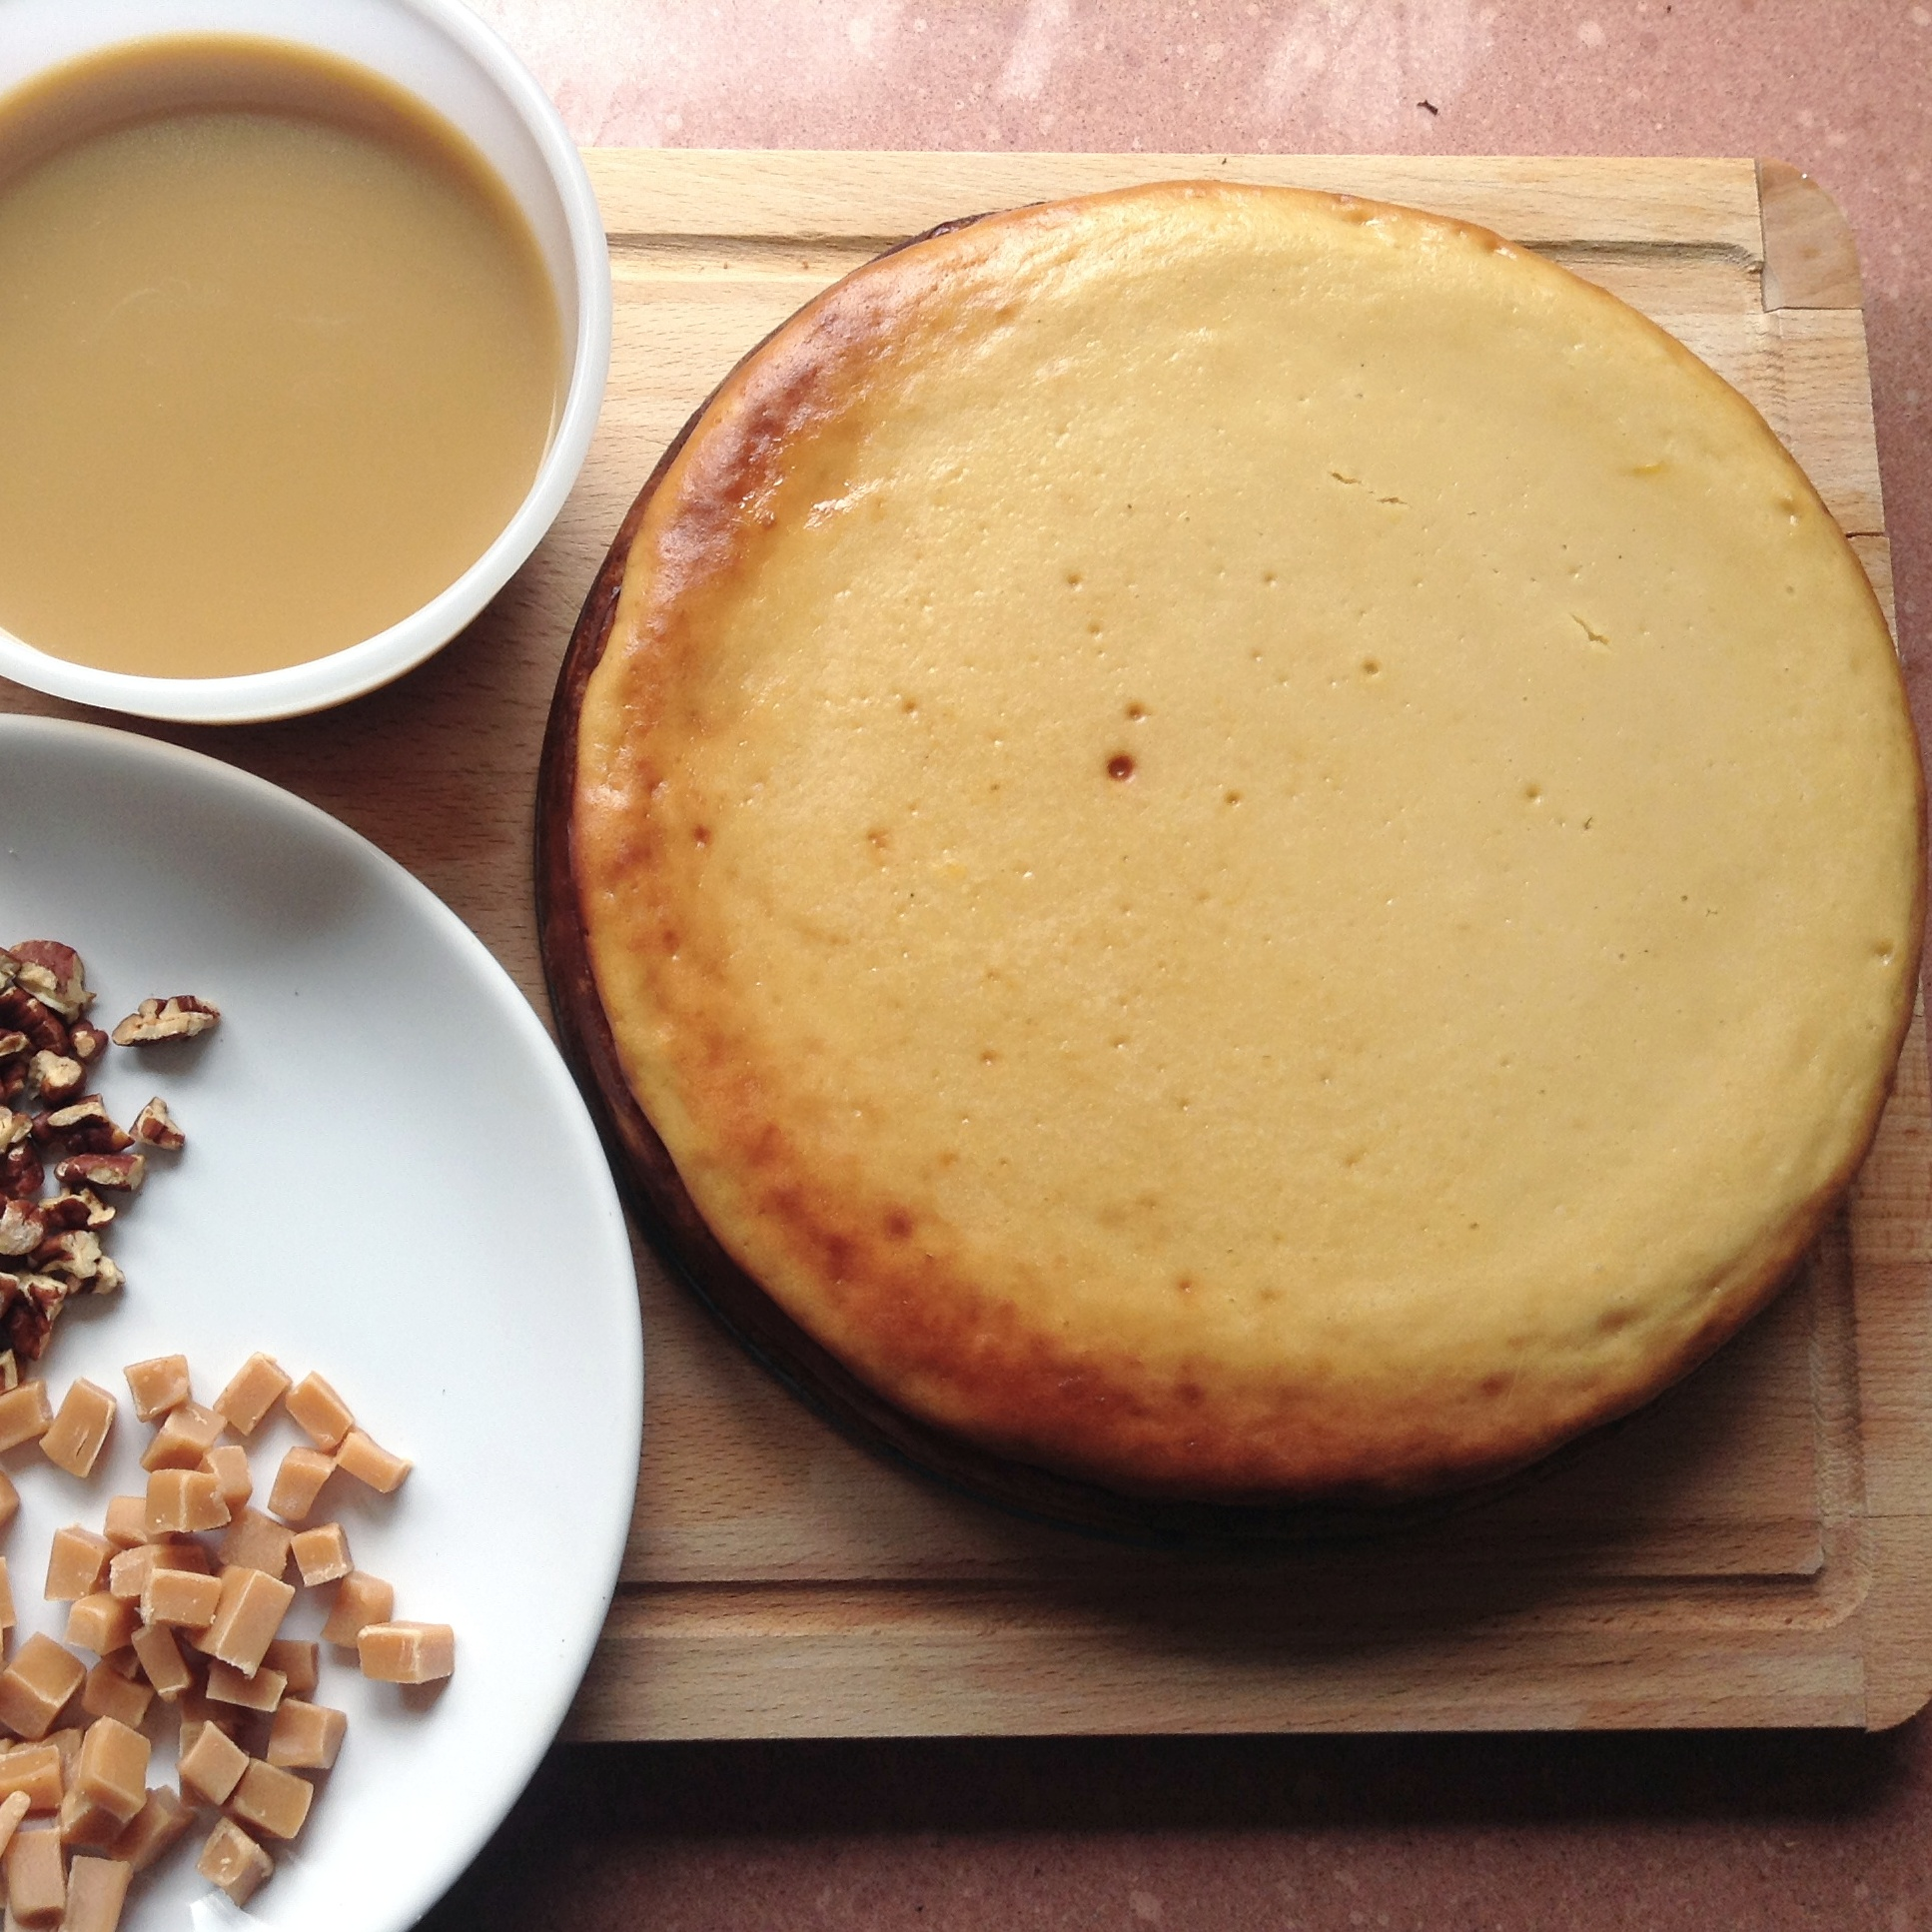 Baked cheesecake with toffee & pecan nuts assembly